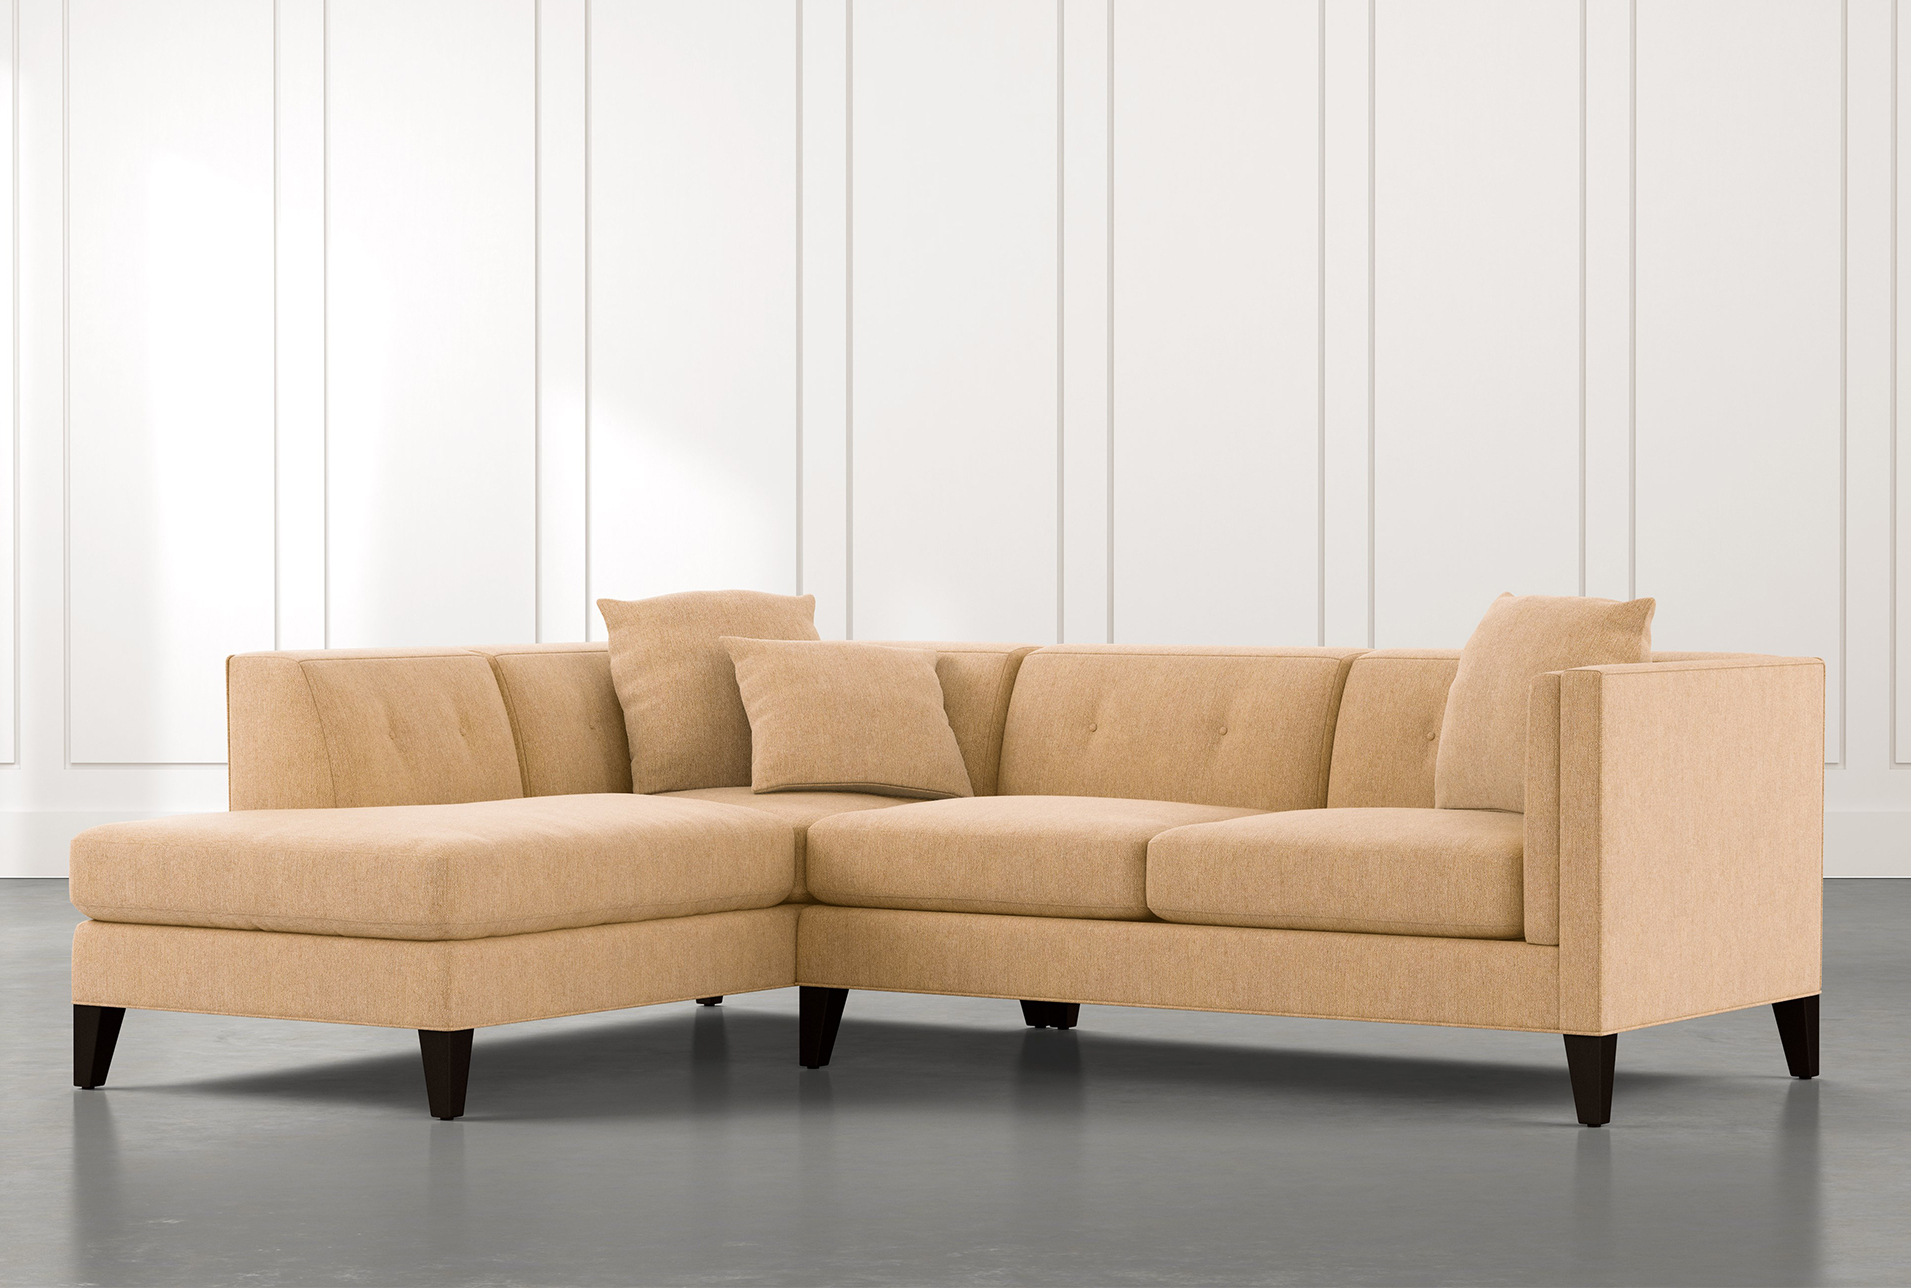 2Pc Connel Modern Chaise Sectional Sofas Black Within Recent Avery Ii Yellow 2 Piece Sectional Sofa With Right Arm (View 12 of 25)